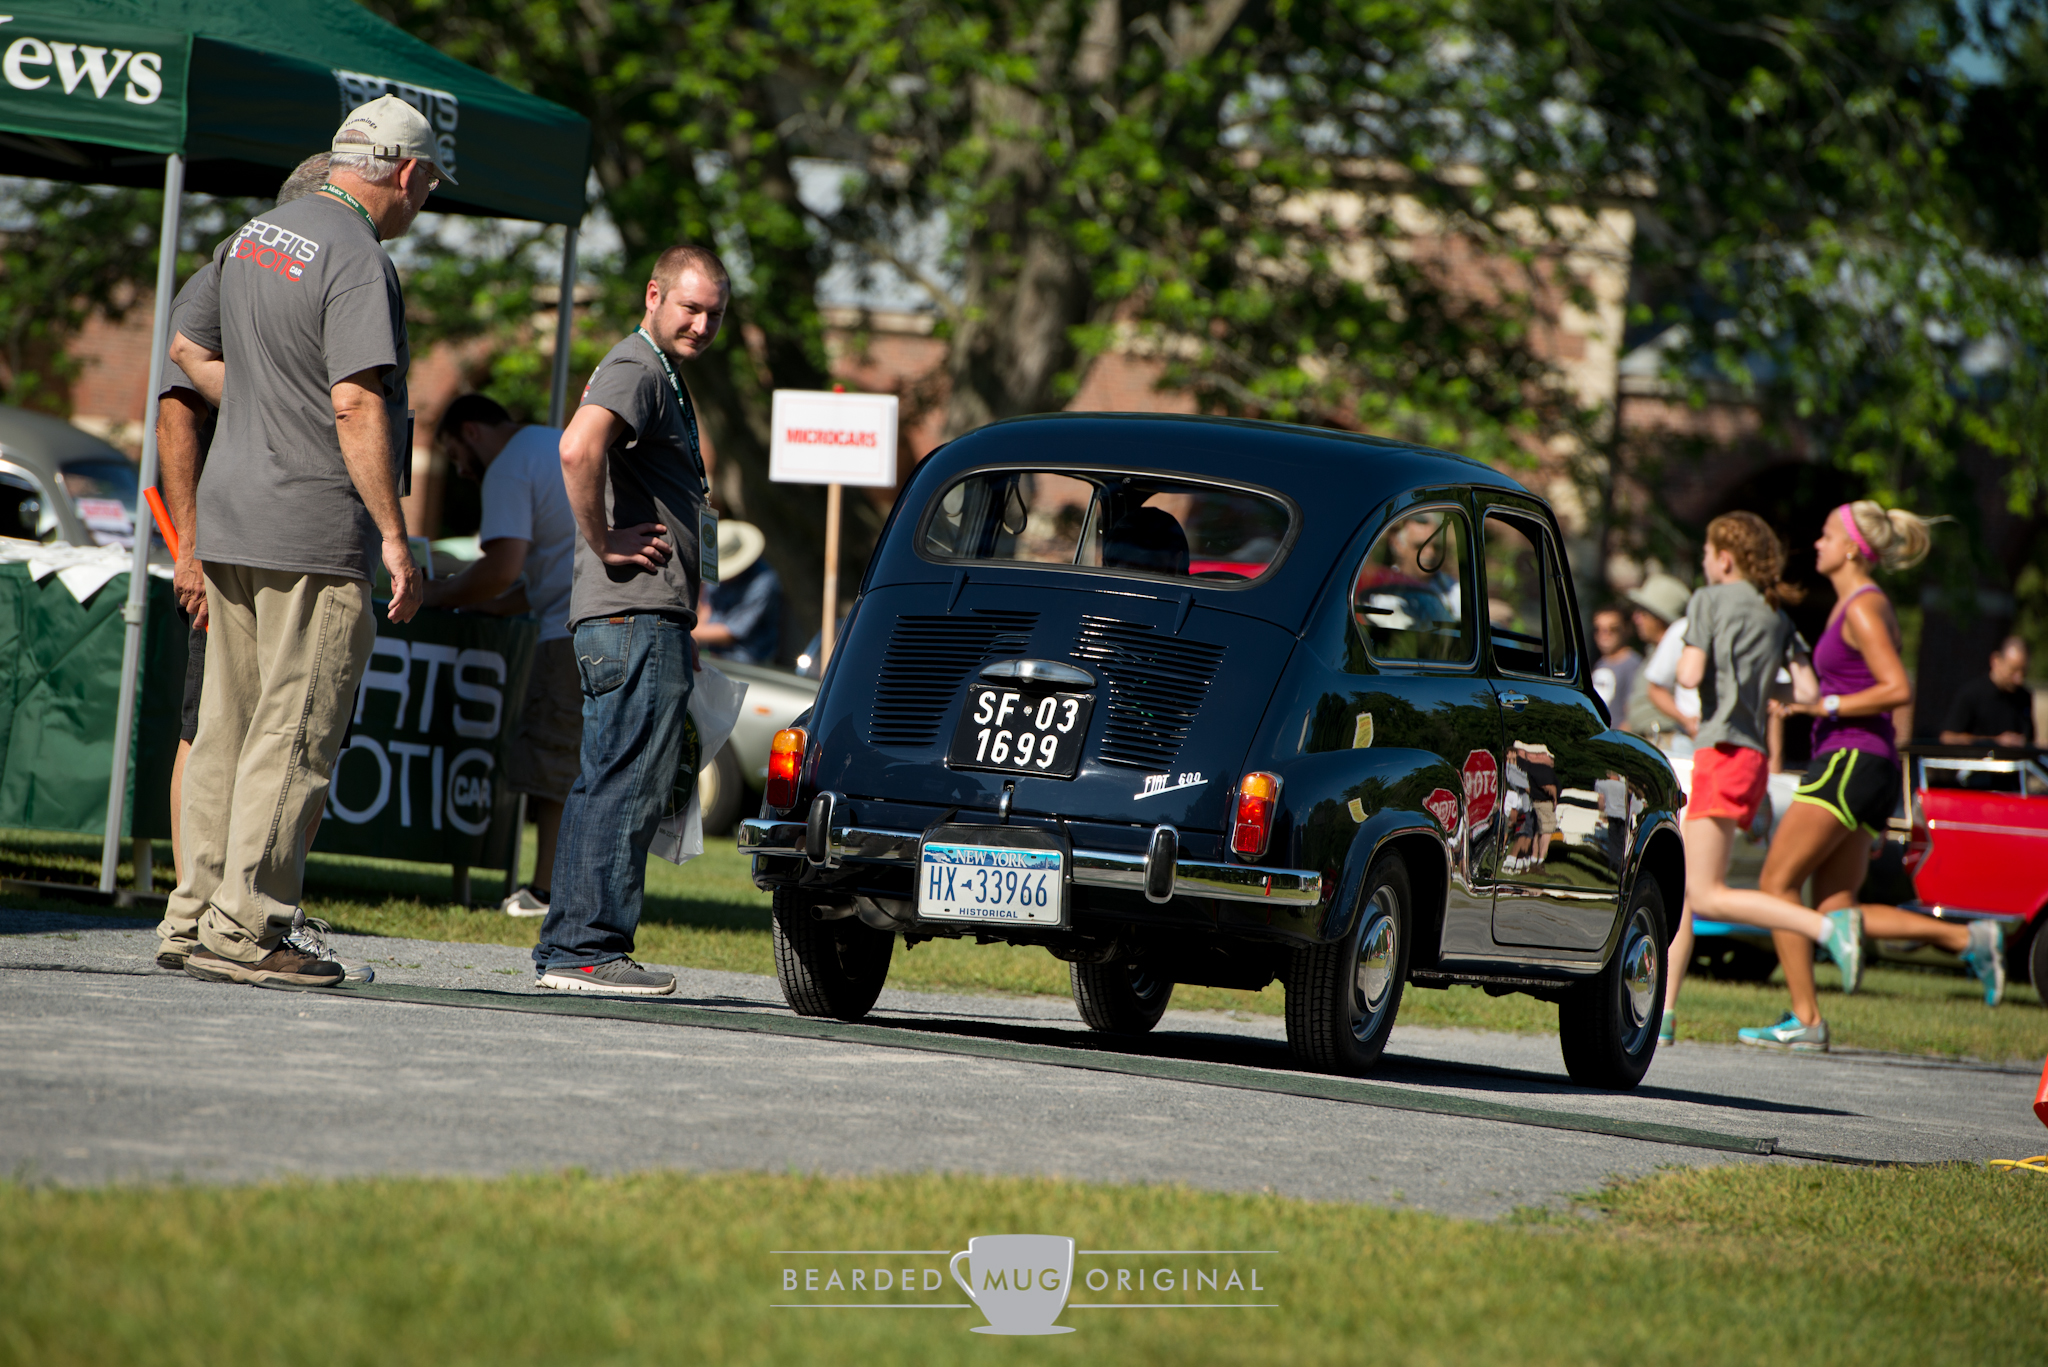 Fiat 600 was admired by the editors as unimpressed joggers trotted by.